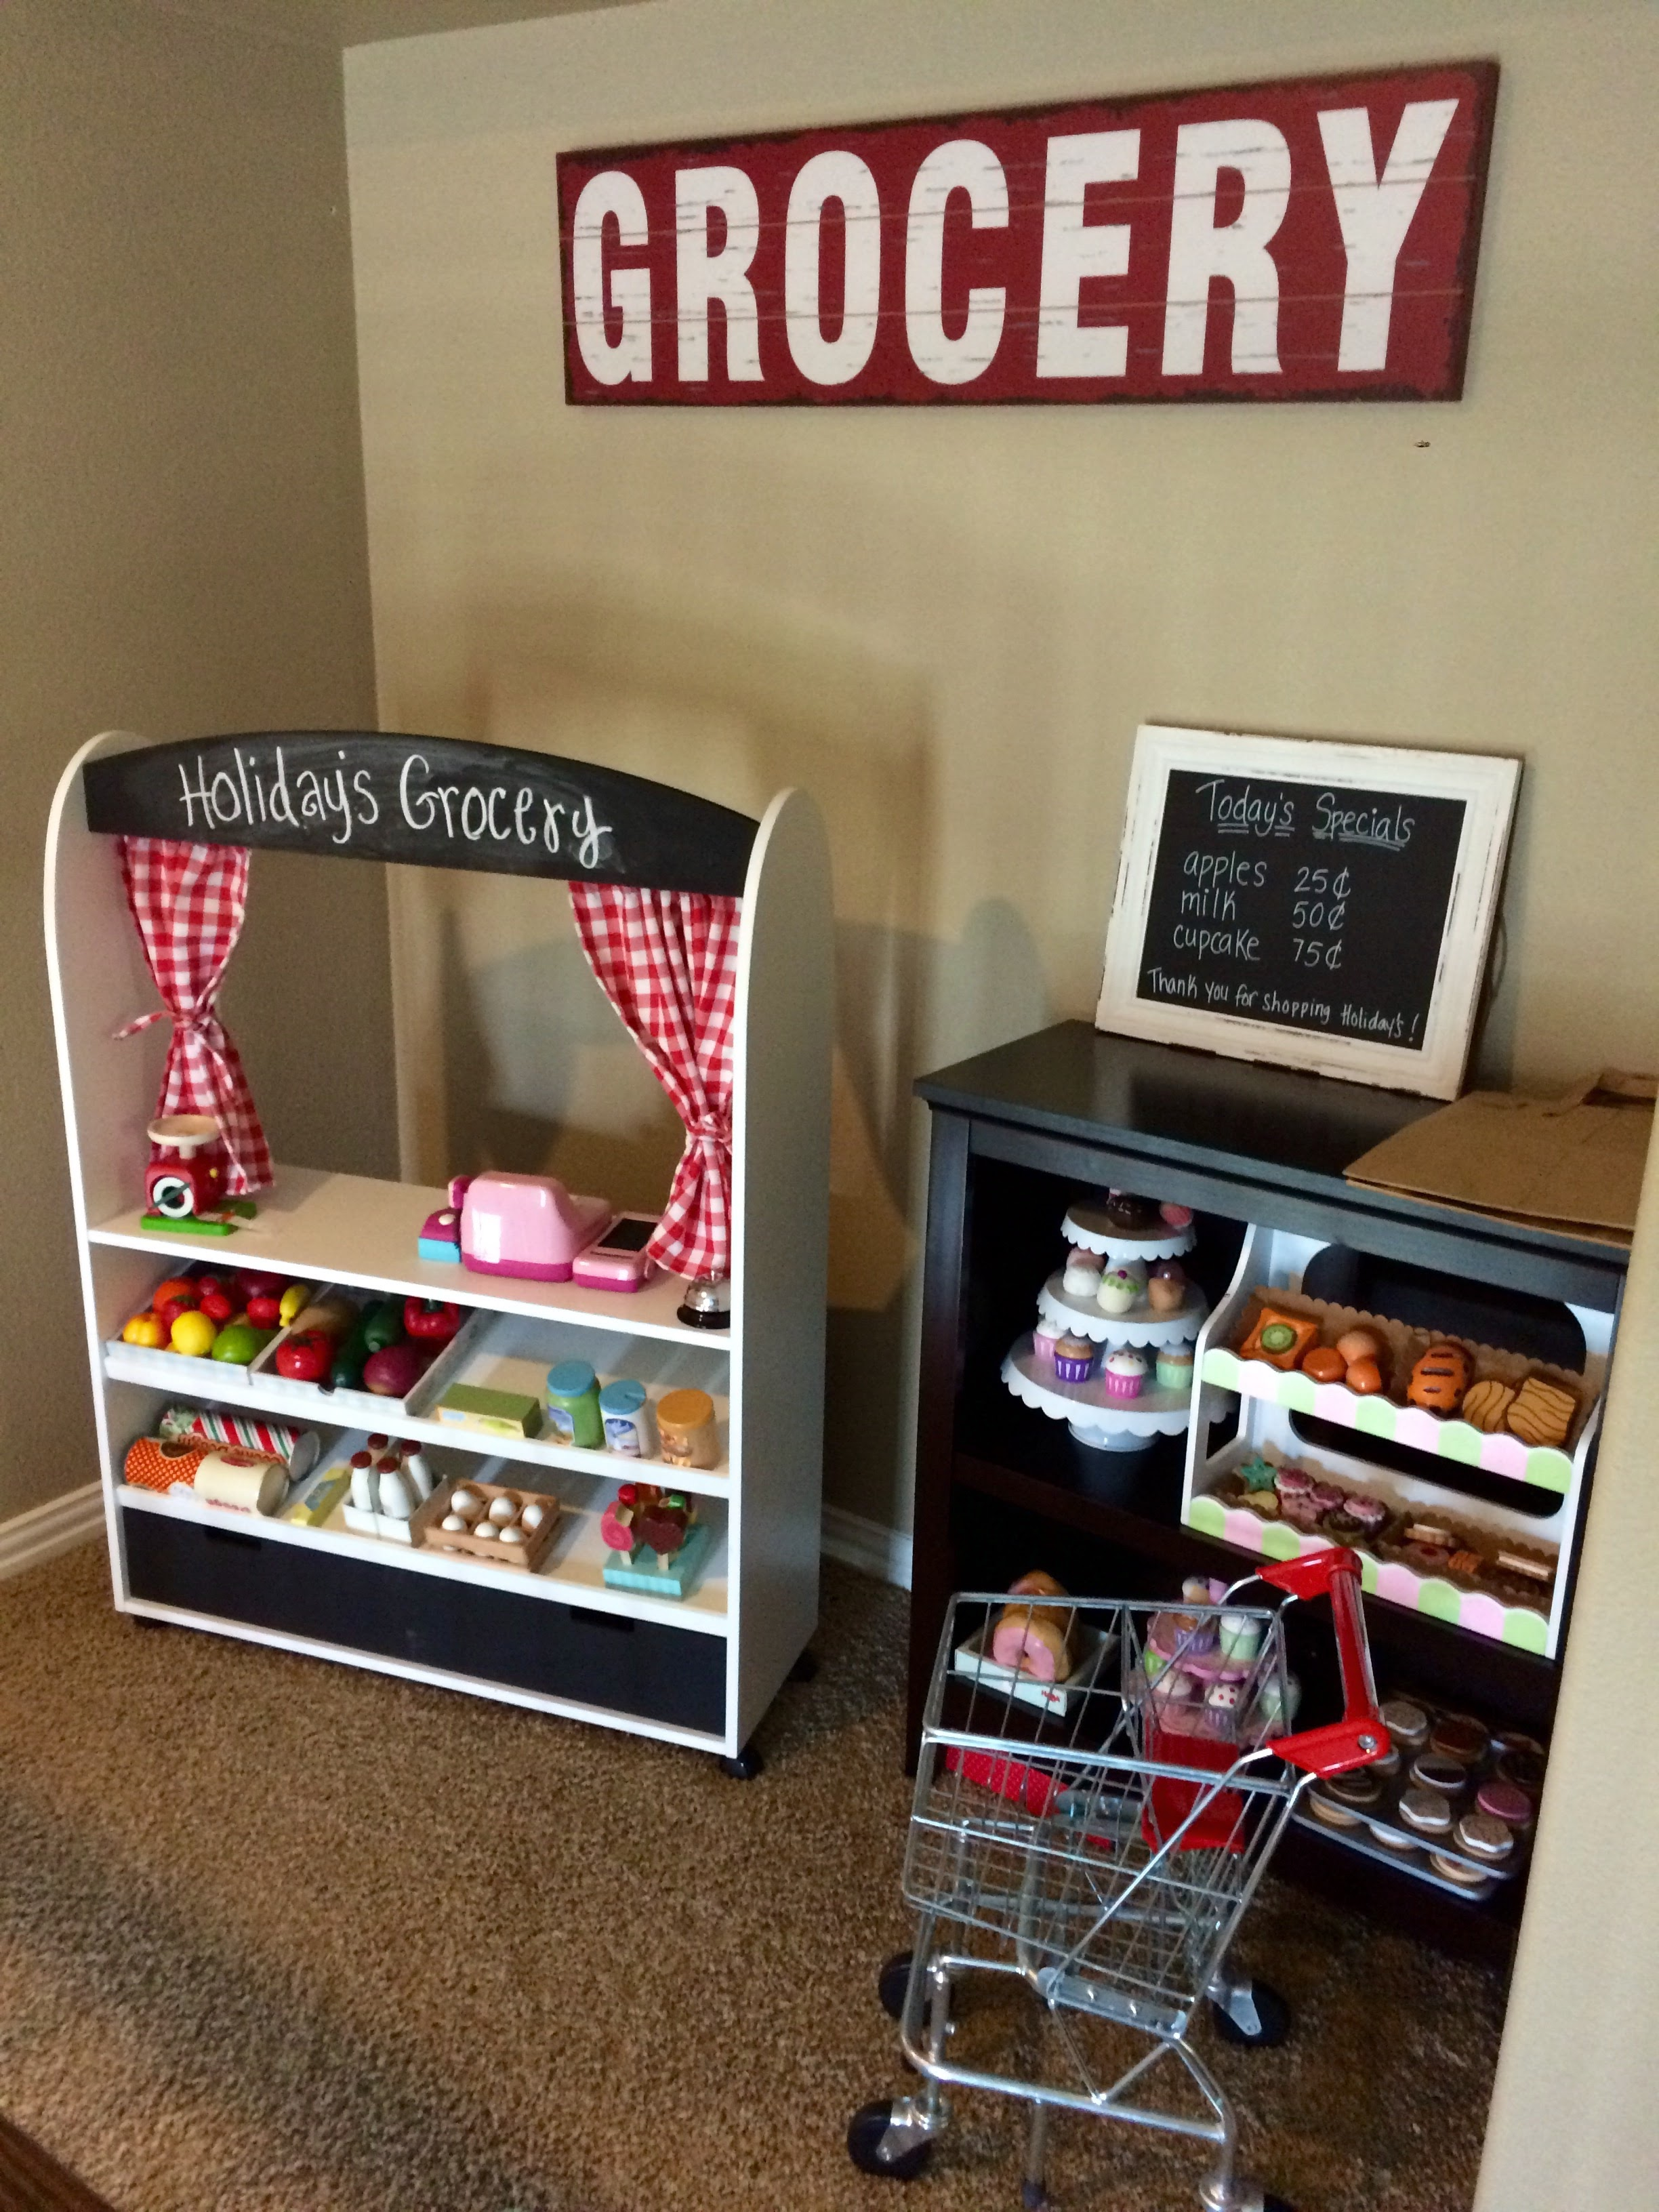 Here's a real life picture of our Grocery set-up!  We happened to have this nook next to our Game and Play rooms upstairs!  Grocery sign is from Hobby Lobby